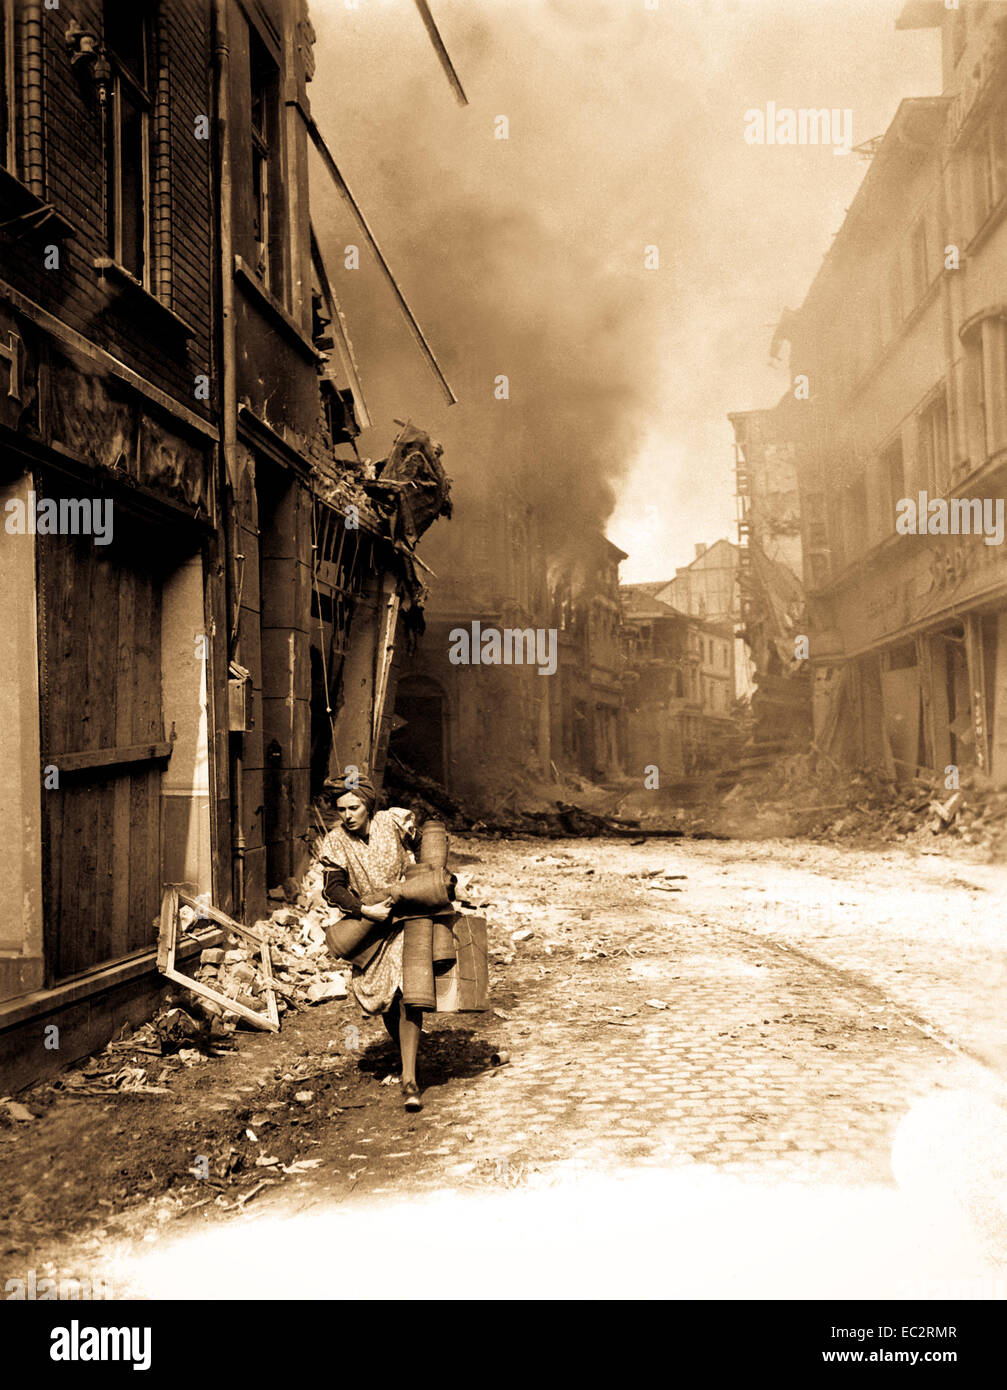 German woman carrying a few possessions runs from burning building in Seigburg, Germany.  Fire started by Nazi saboteur. - Stock Image